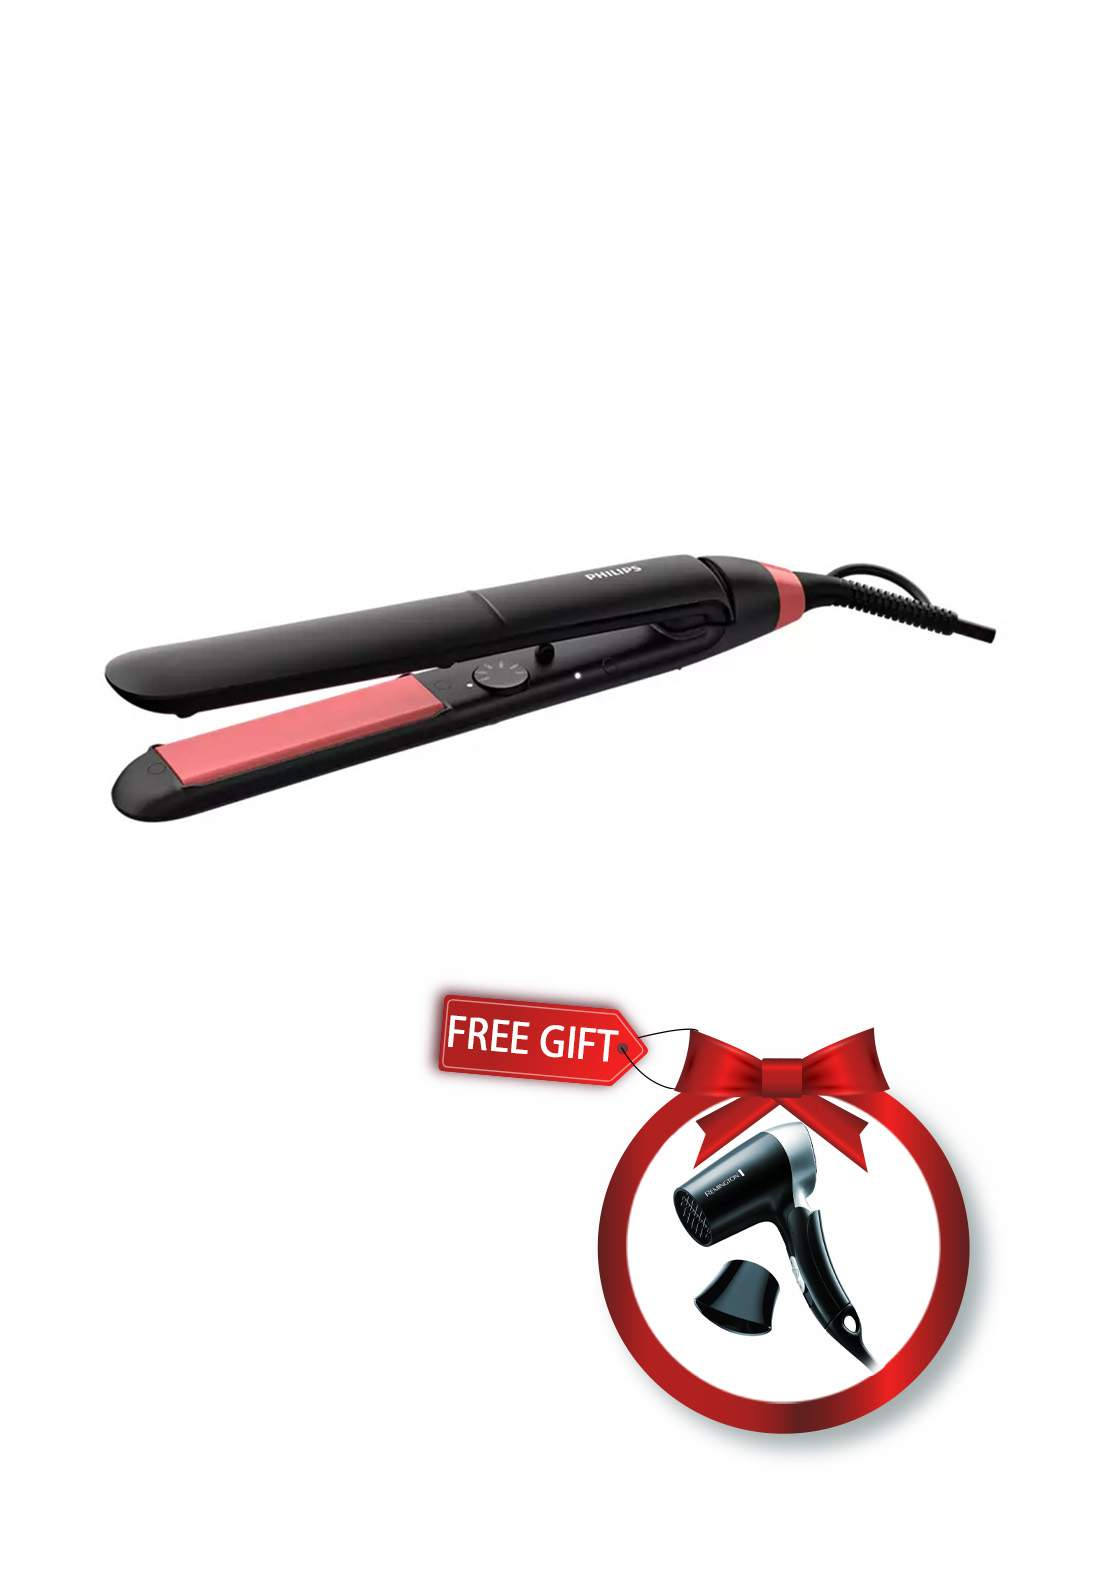 Philips BHS376 StraightCare Essential ThermoProtect straightener and Remington D2400 On The Go Travel Dryer عرض أداة تمليس + مجفف للشعر